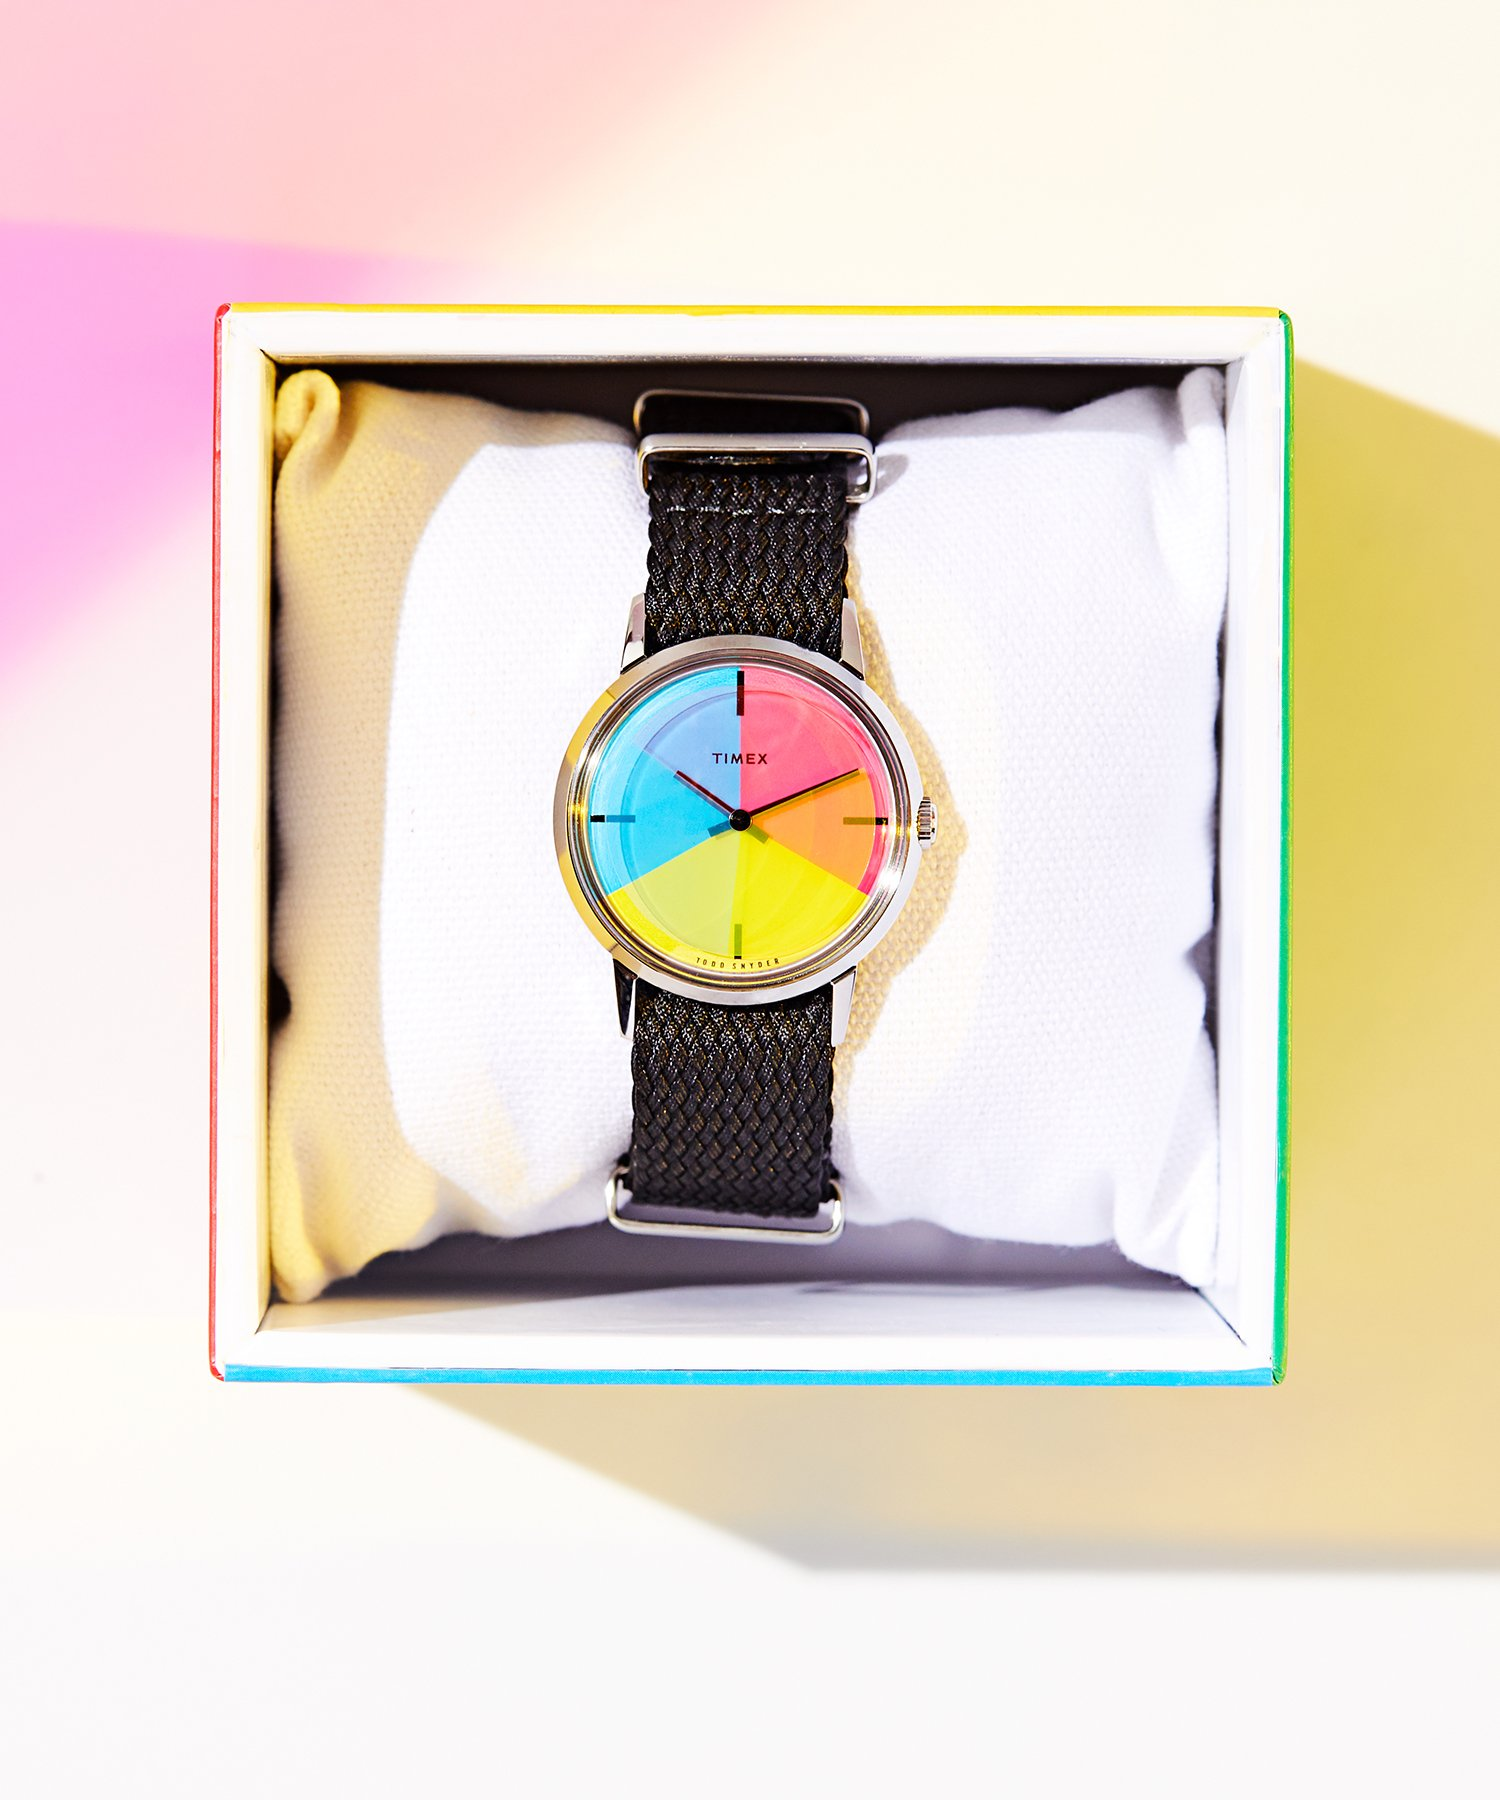 6 fabulous rainbow watches released in 2020, from $180 – $5000+